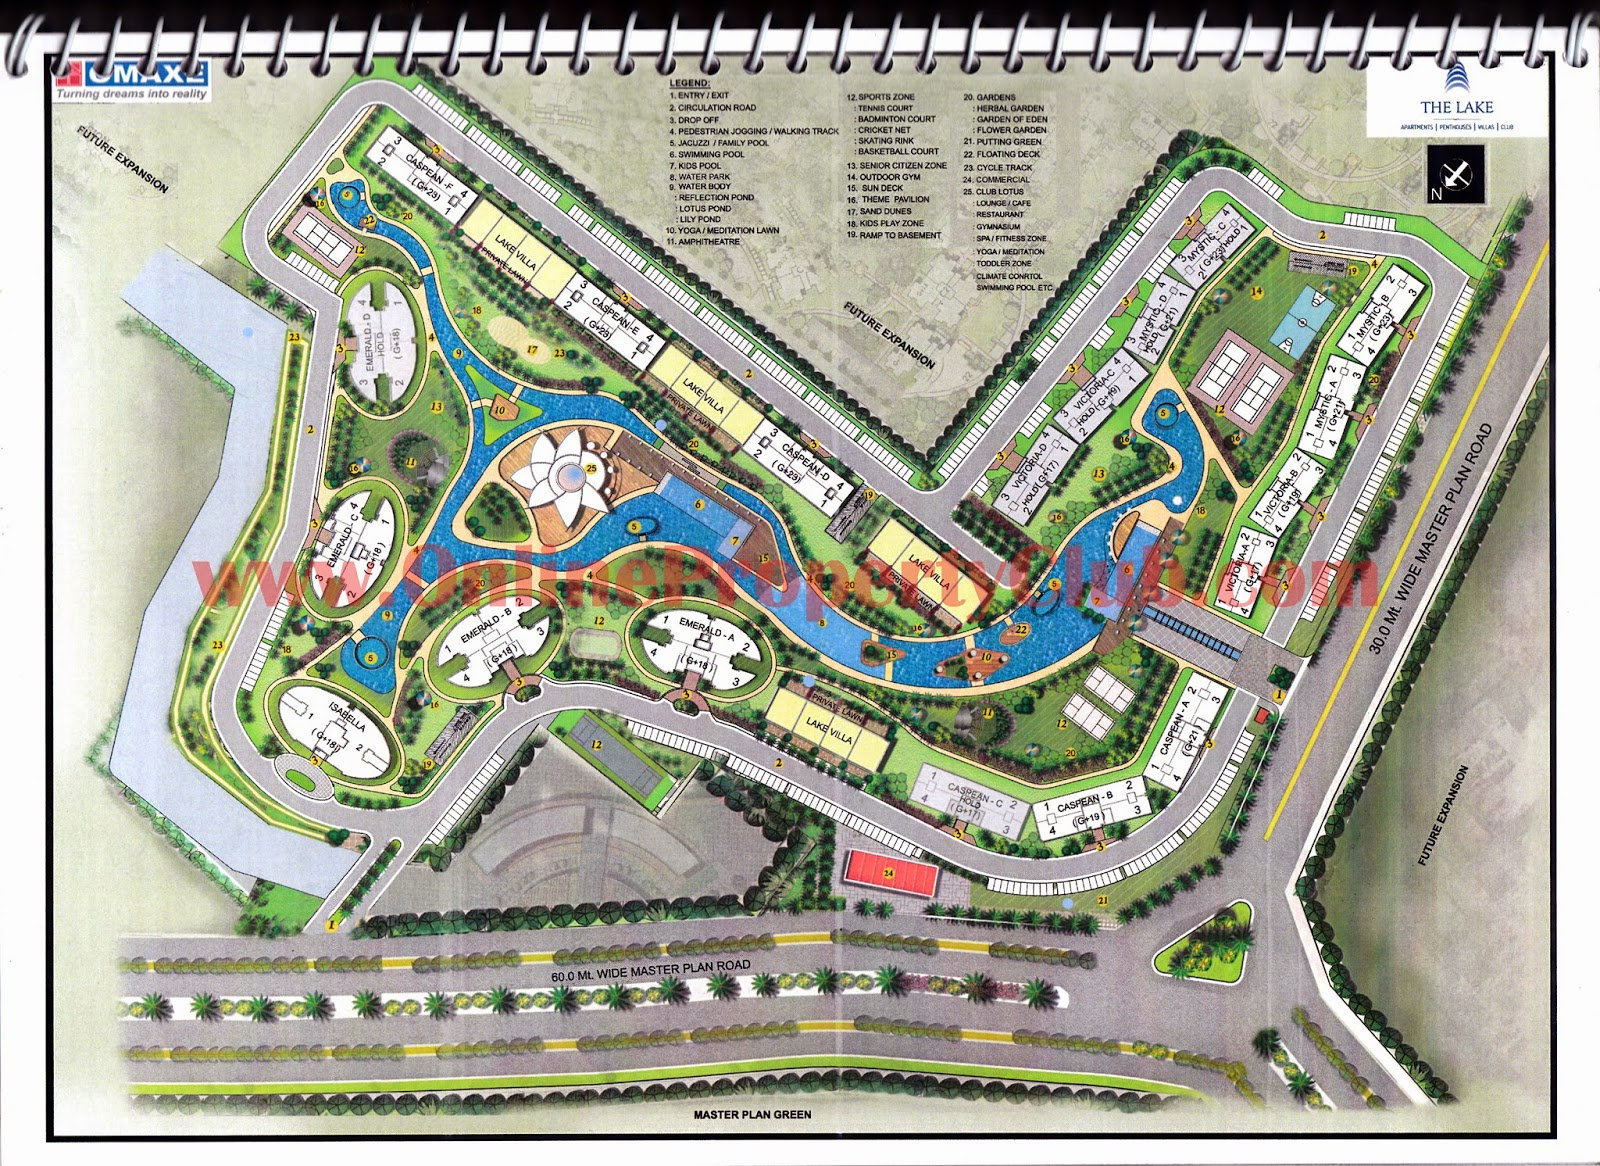 omaxe highrise flats mullanpur layout map